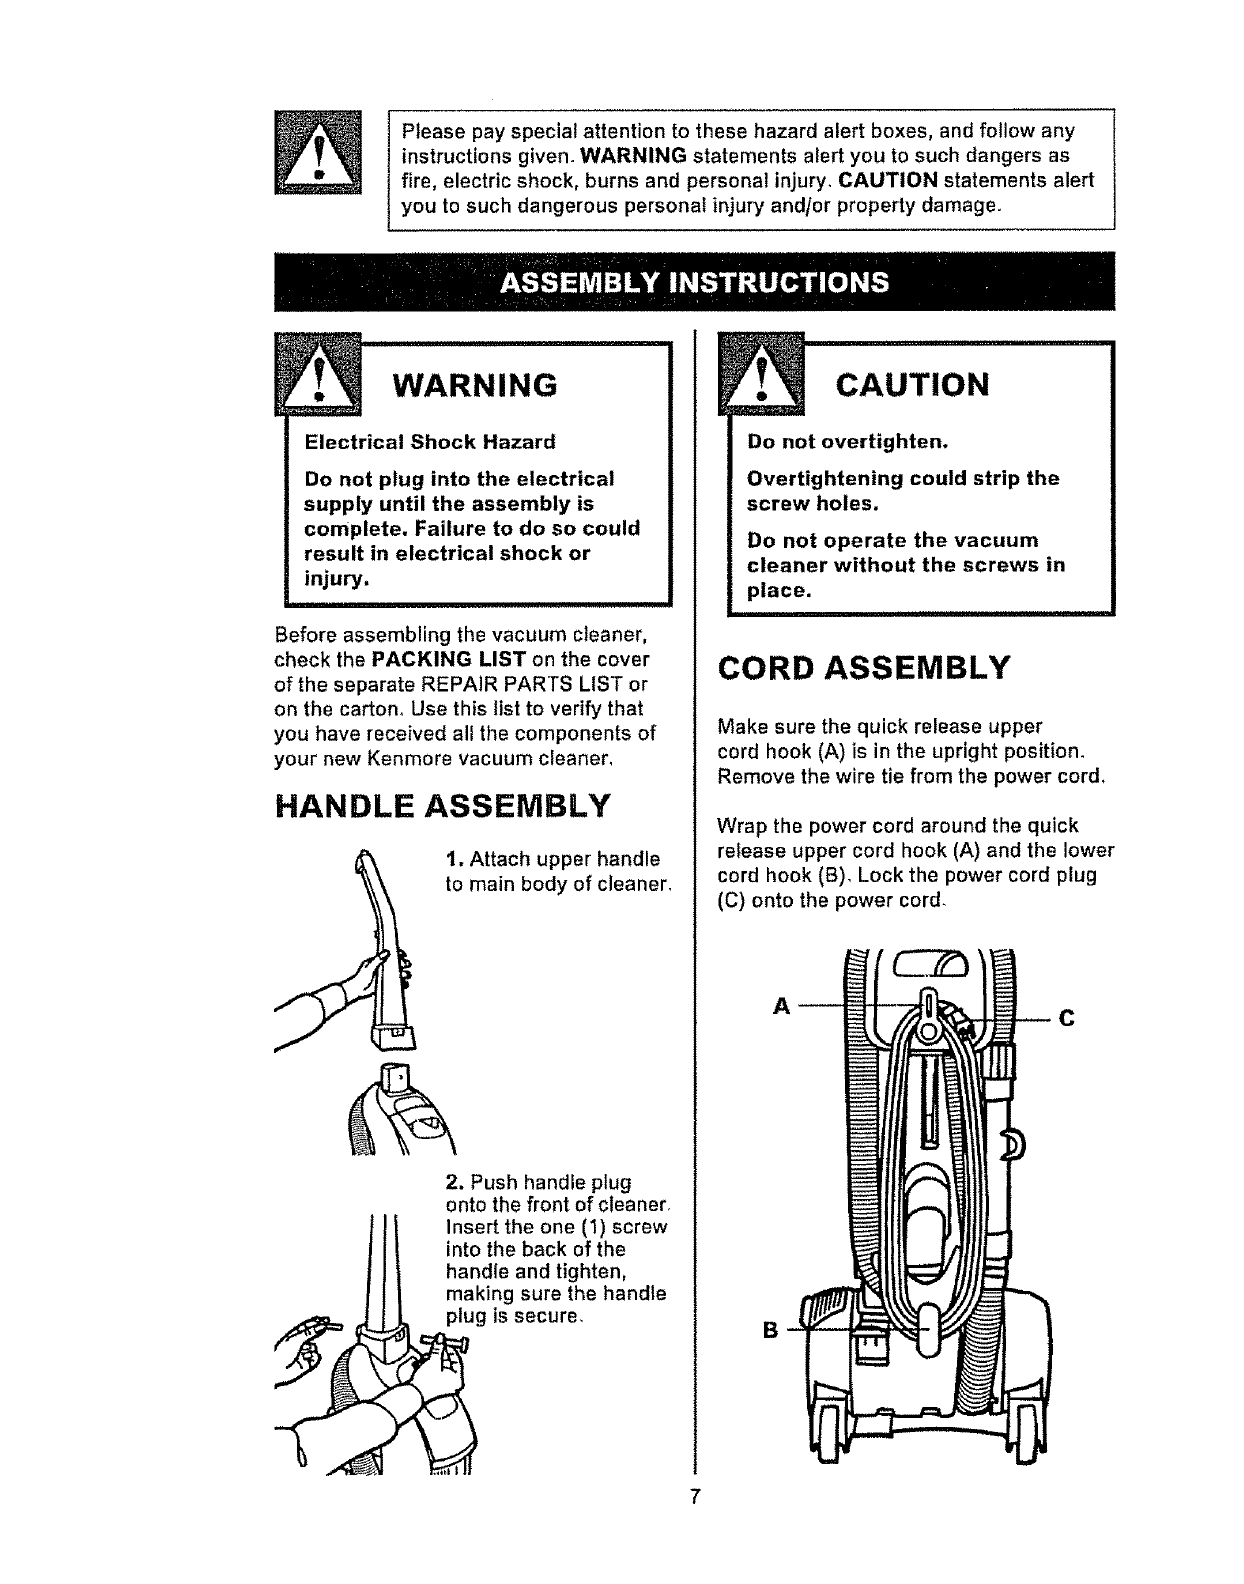 Kenmore 21637000700 User Manual Vacuum Manuals And Guides L0710421 Sears Cleaner Wiring Diagram Please Pay Special Attention To These Hazard Alert Boxes Follow Any